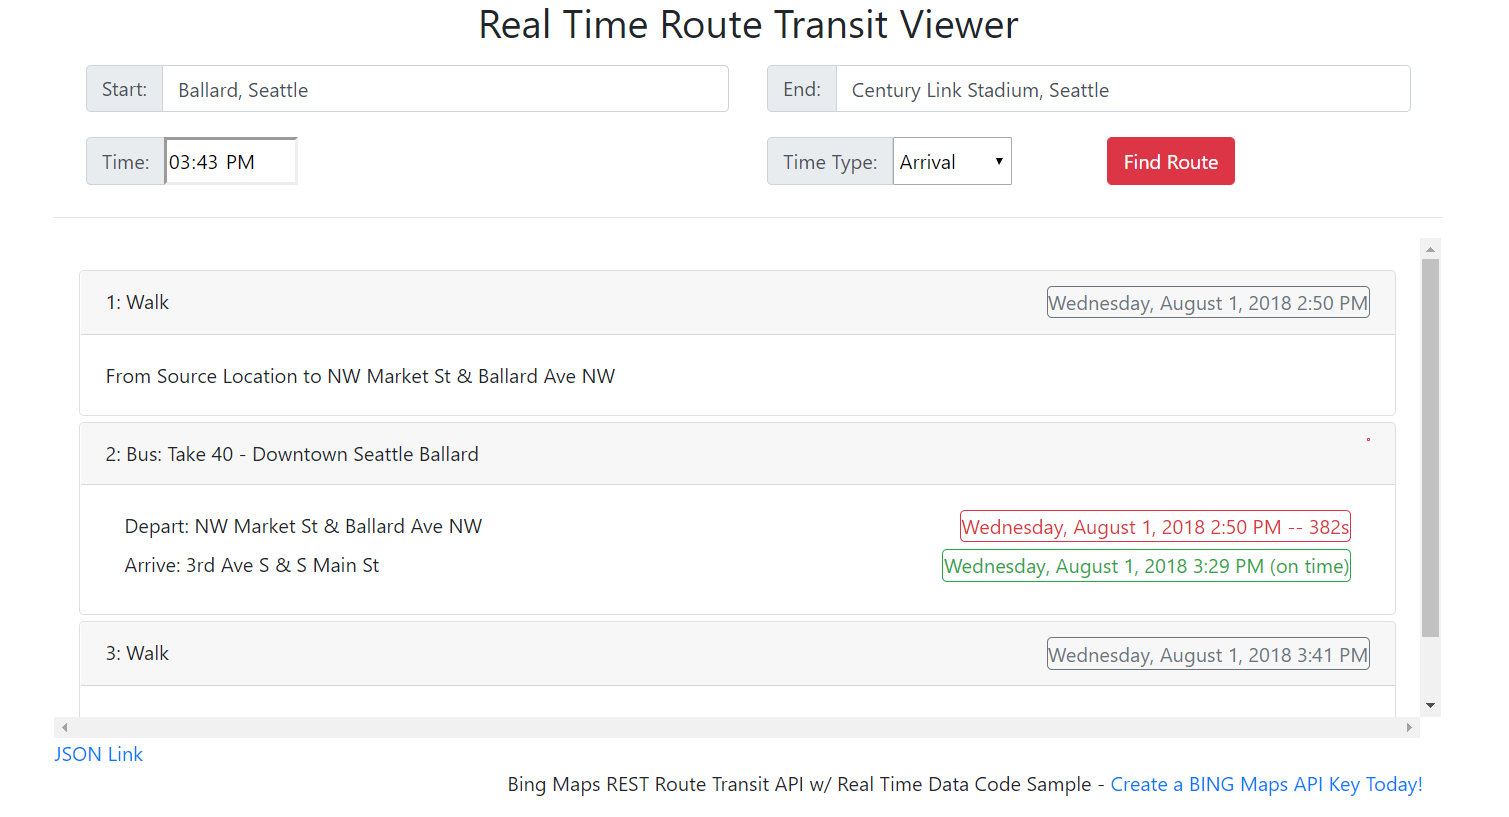 Reatime Route Transit Viewer